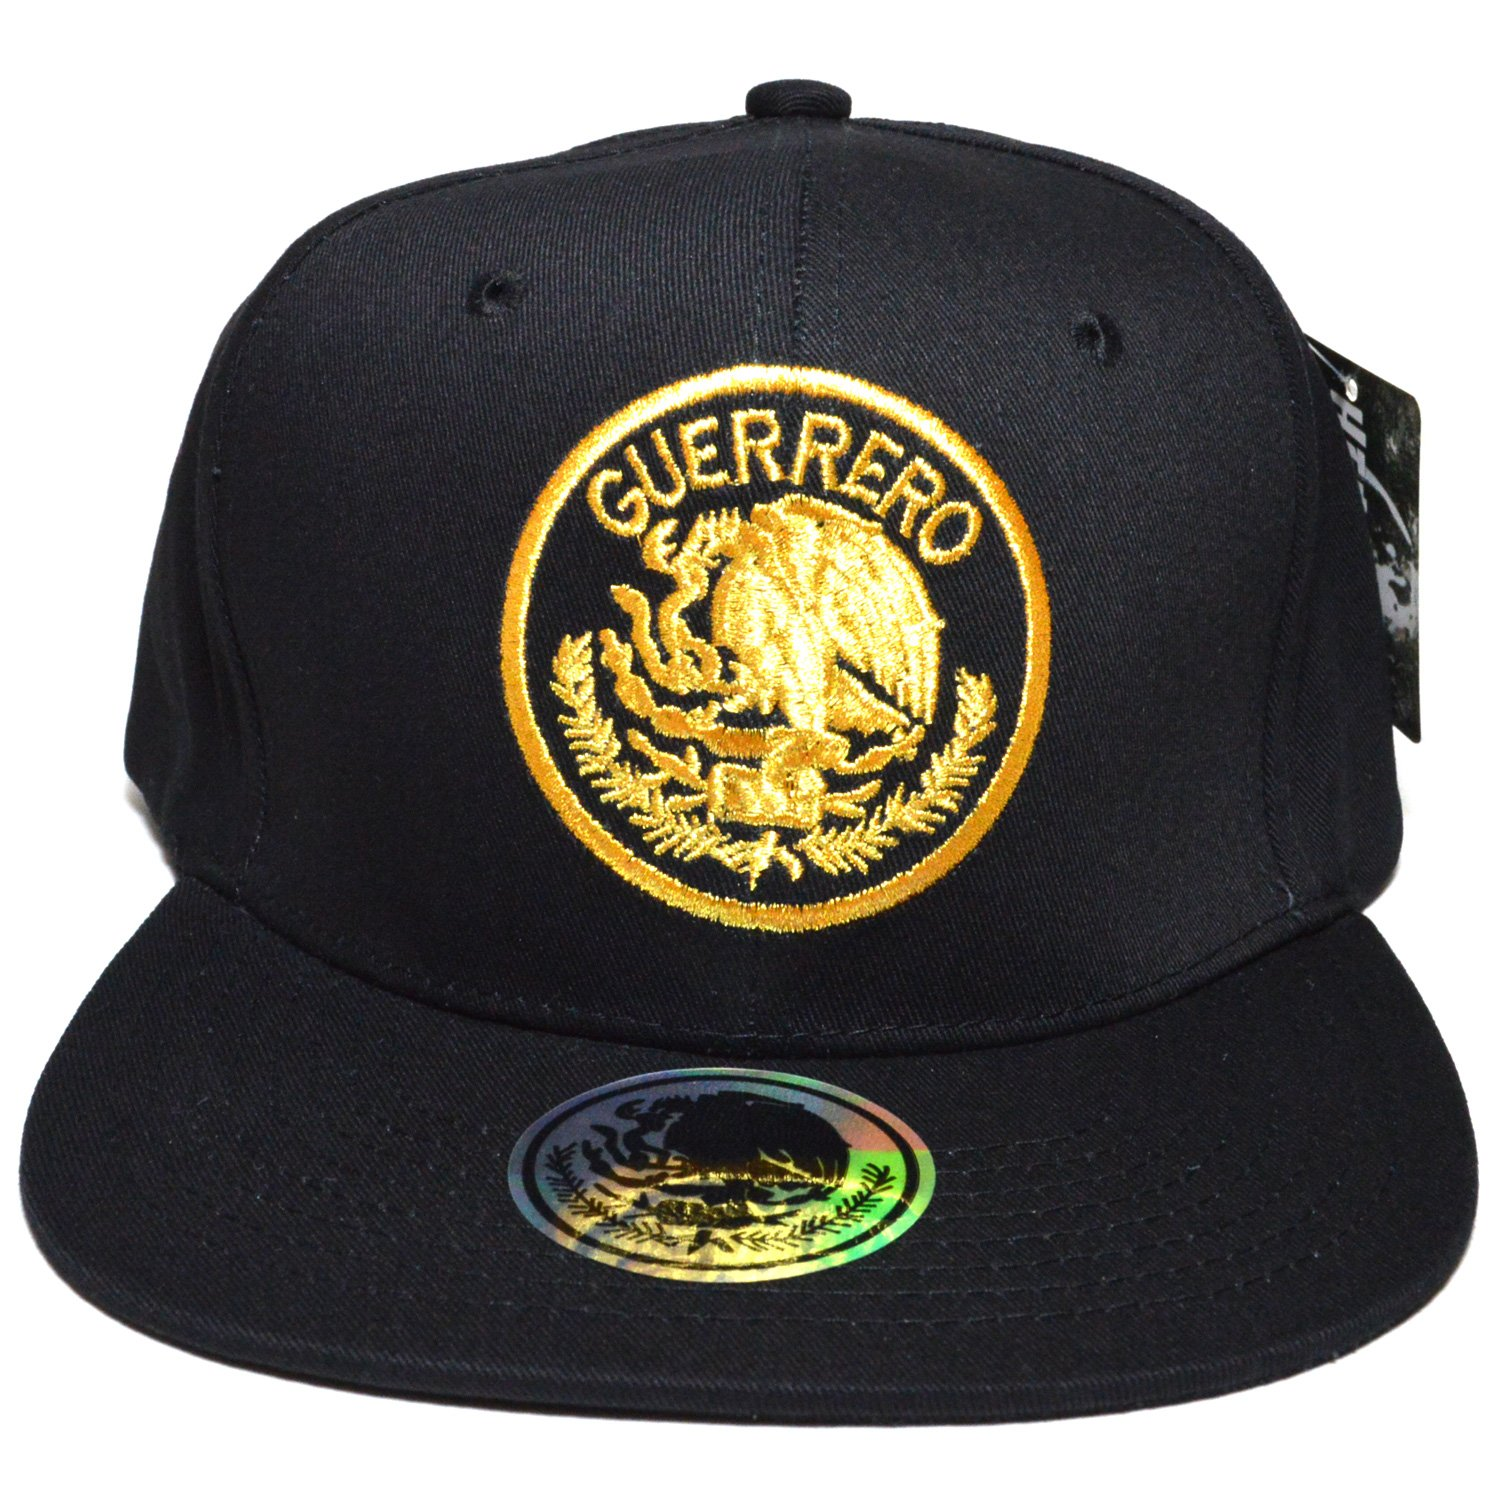 ae87663a7d3aa Headlines Mexico City Embroidered  01 Snapback Flat Bill Visor Cap Durable  Golf Baseball Hat (Guerrero) at Amazon Men s Clothing store